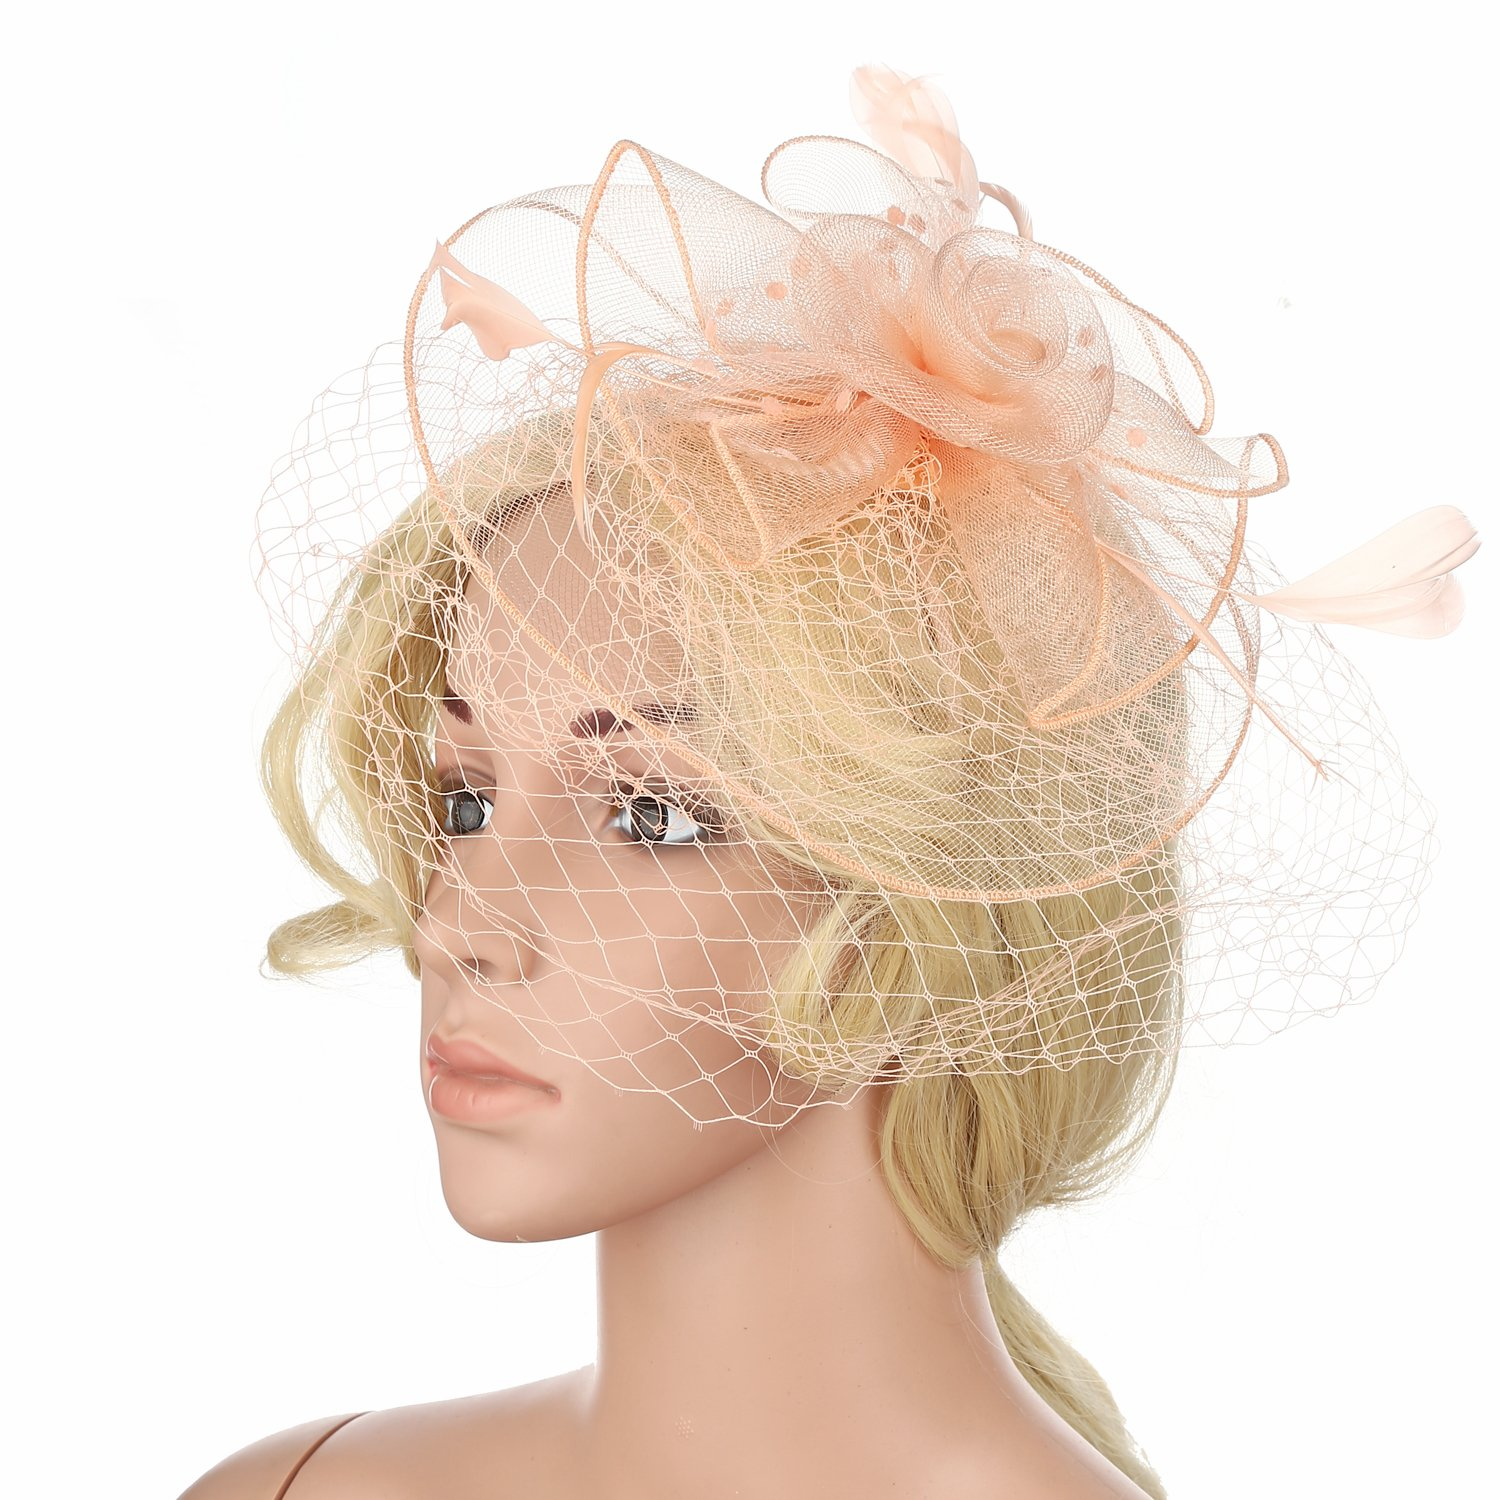 XingQiPlay Feather Mesh Net Womens Fascinators Hat with Veil Headband Hair Clip for Girls (Champagne